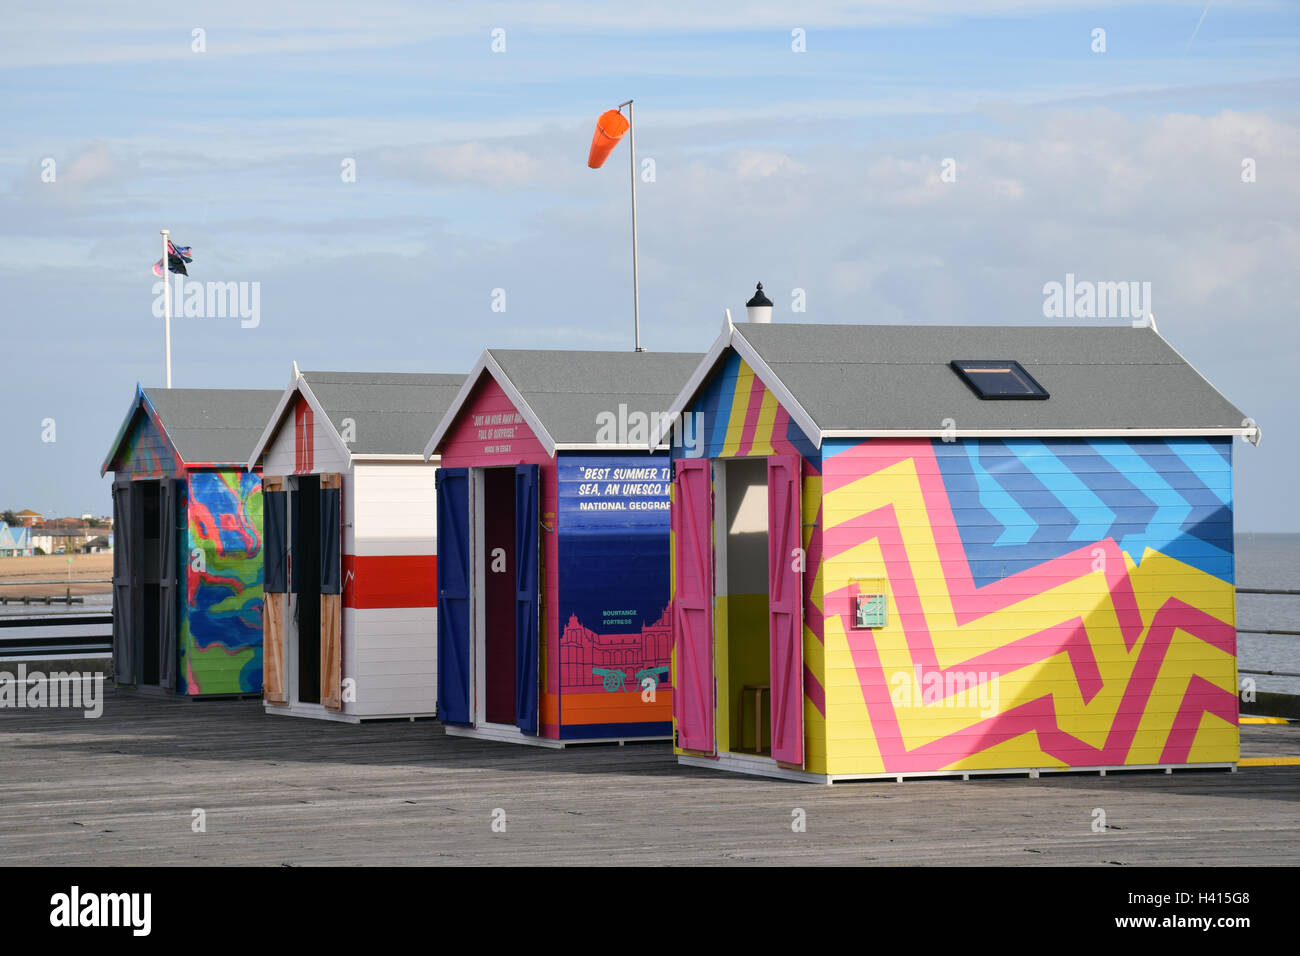 Brightly coloured beach huts on Southend pier as part of the Estuary Festival, Essex Sep 2016 Stock Photo